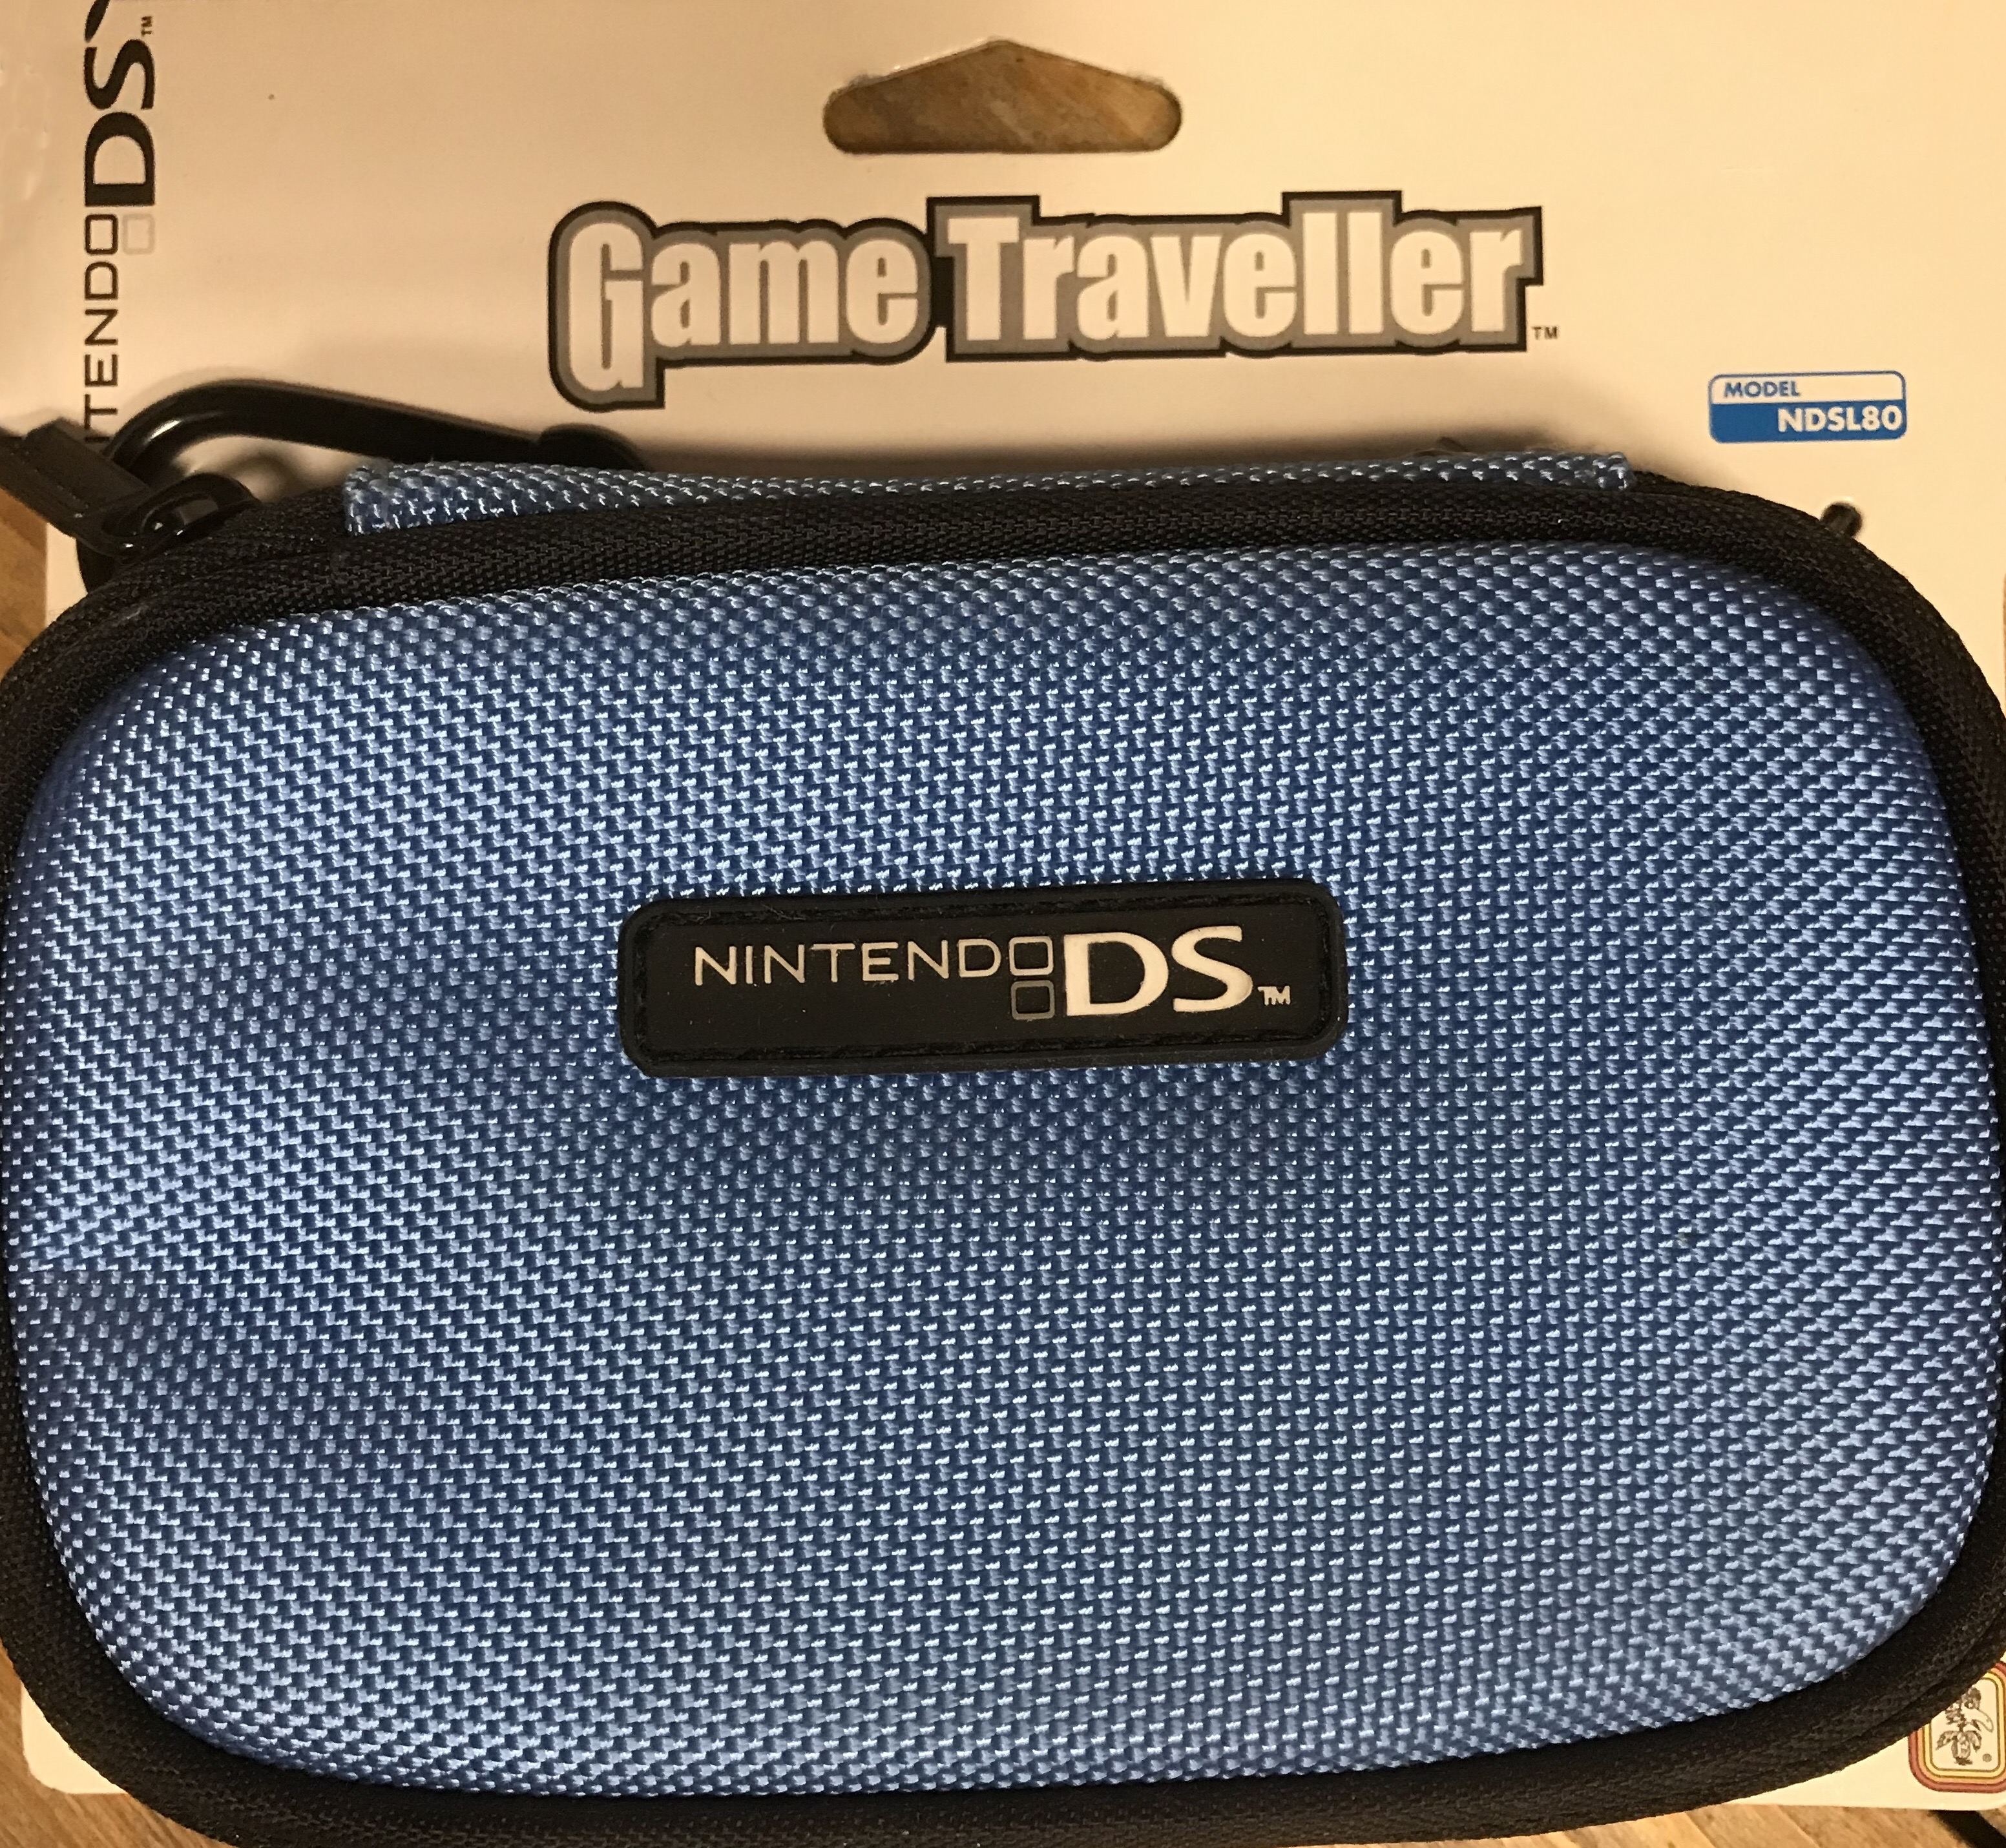 Nintendo DS Light Carrying Case NDSL 80 (Világoskék)